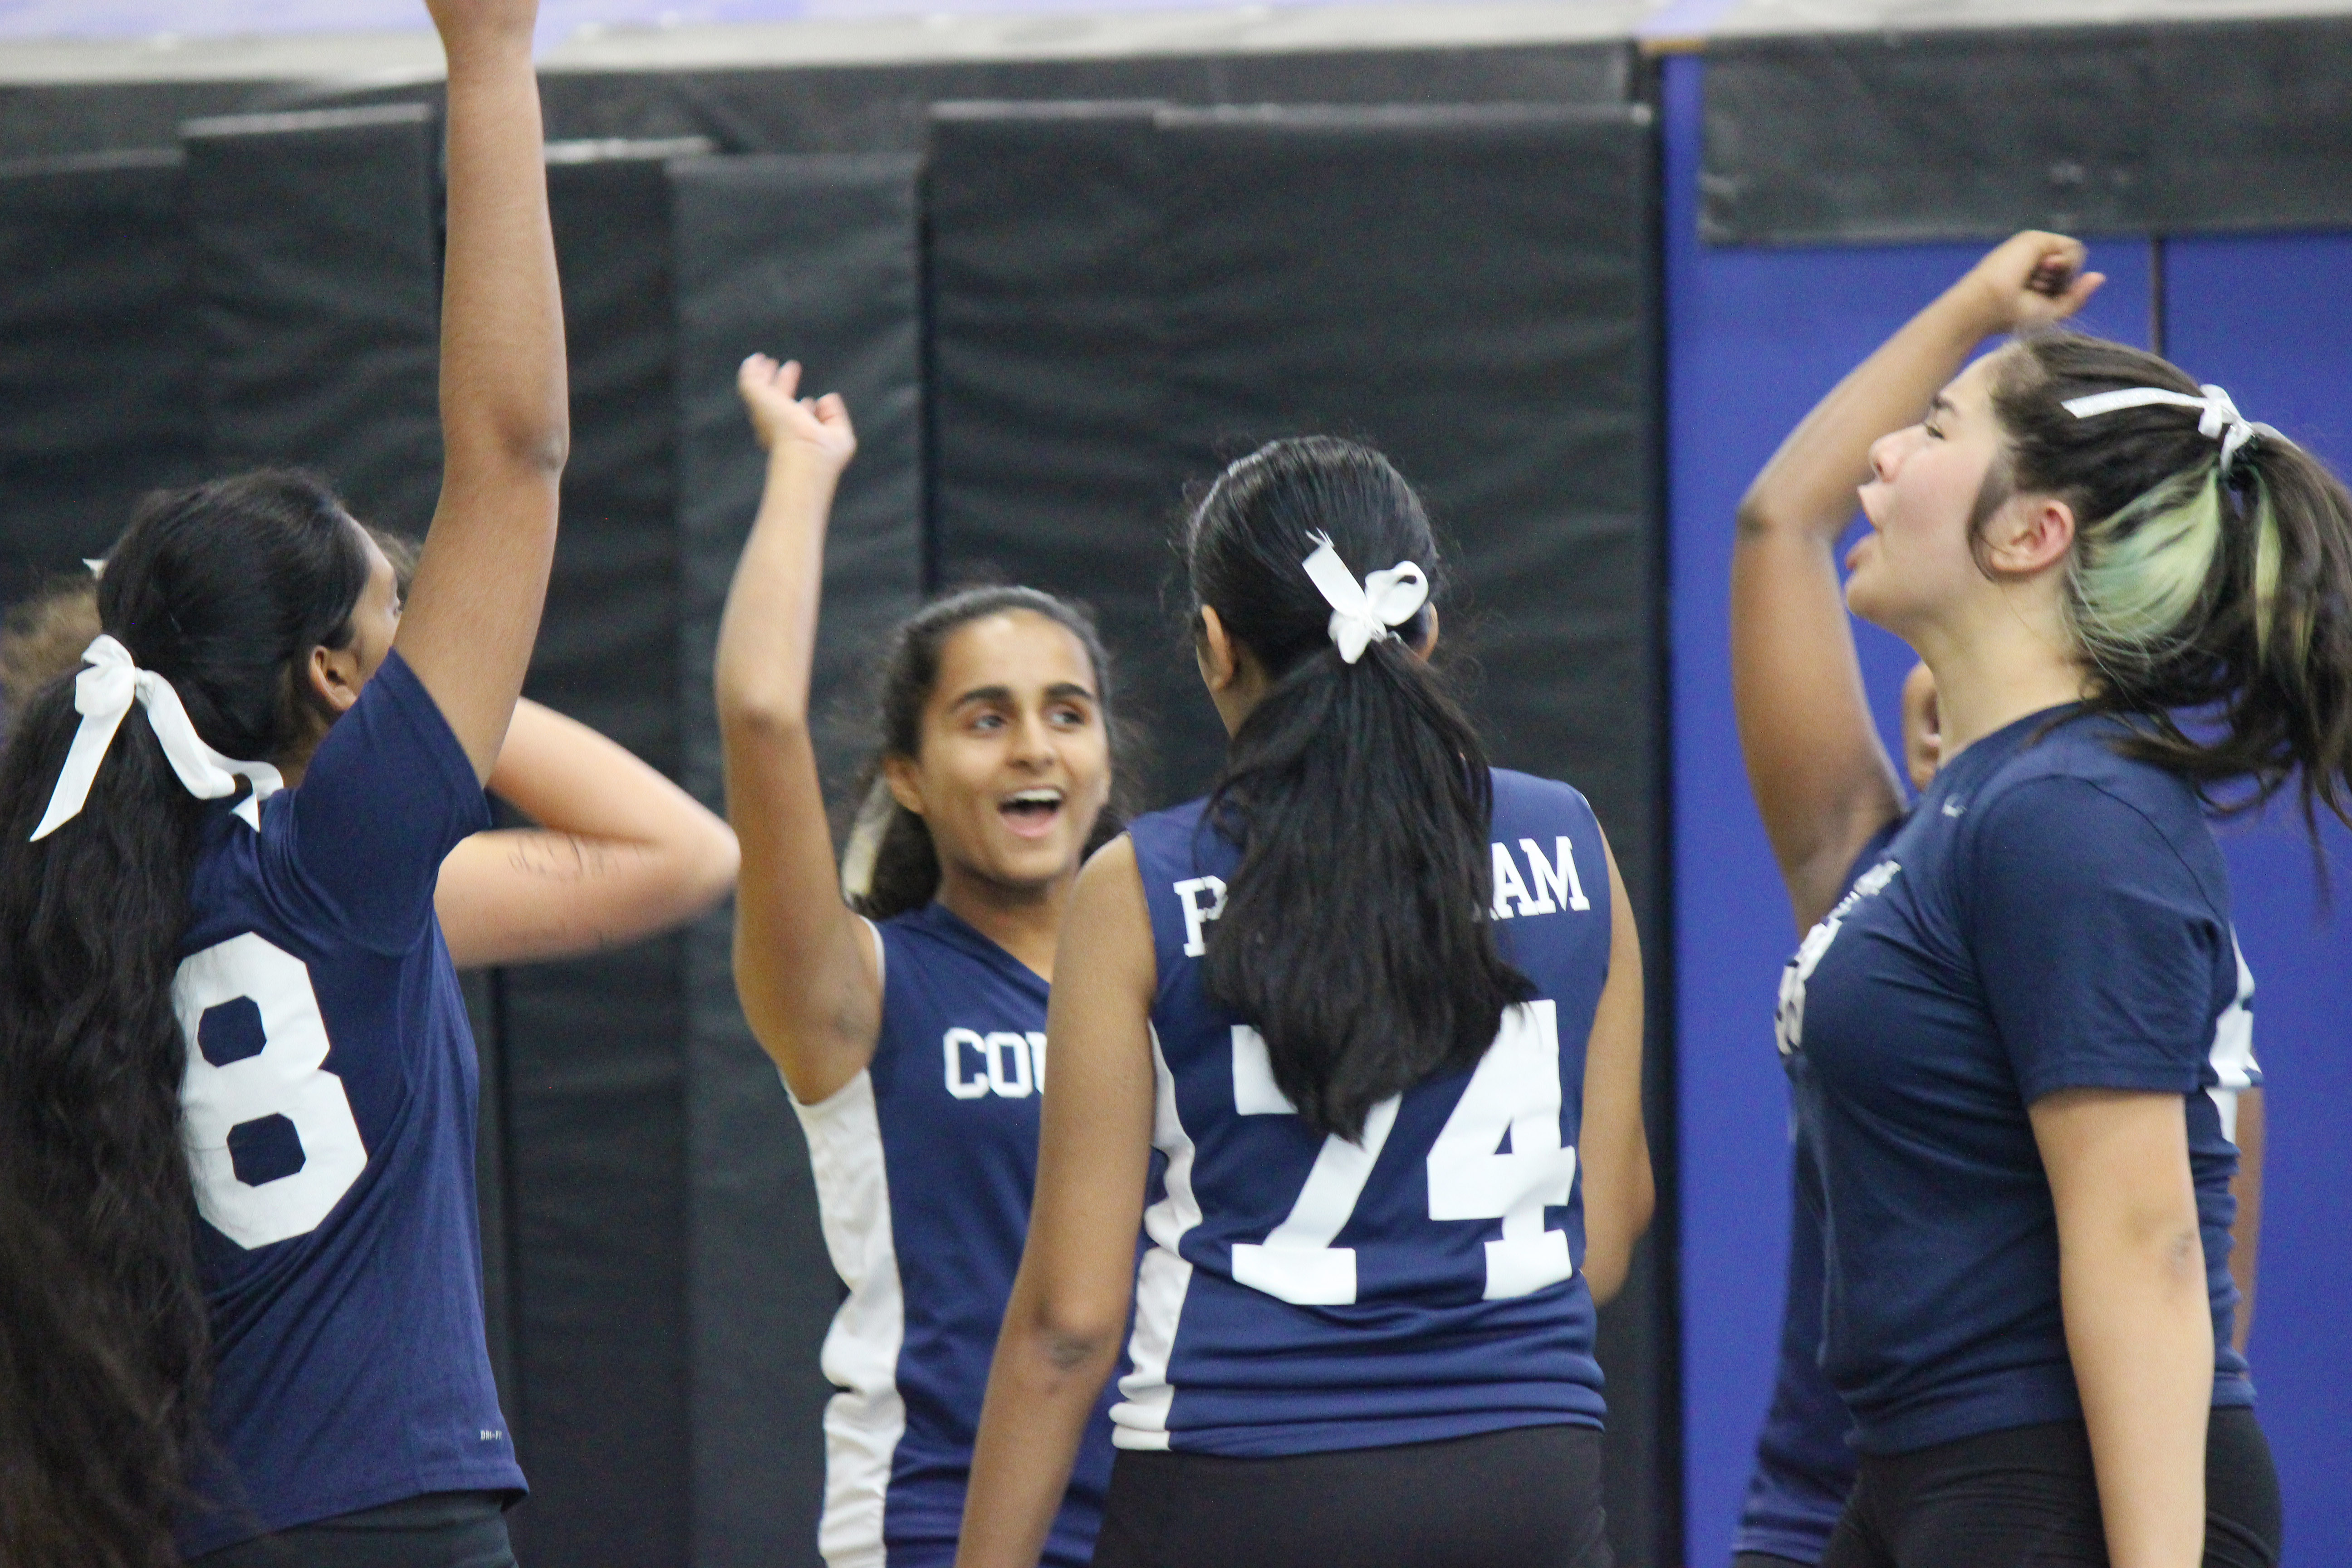 QLS Middle School Girls Volleyball